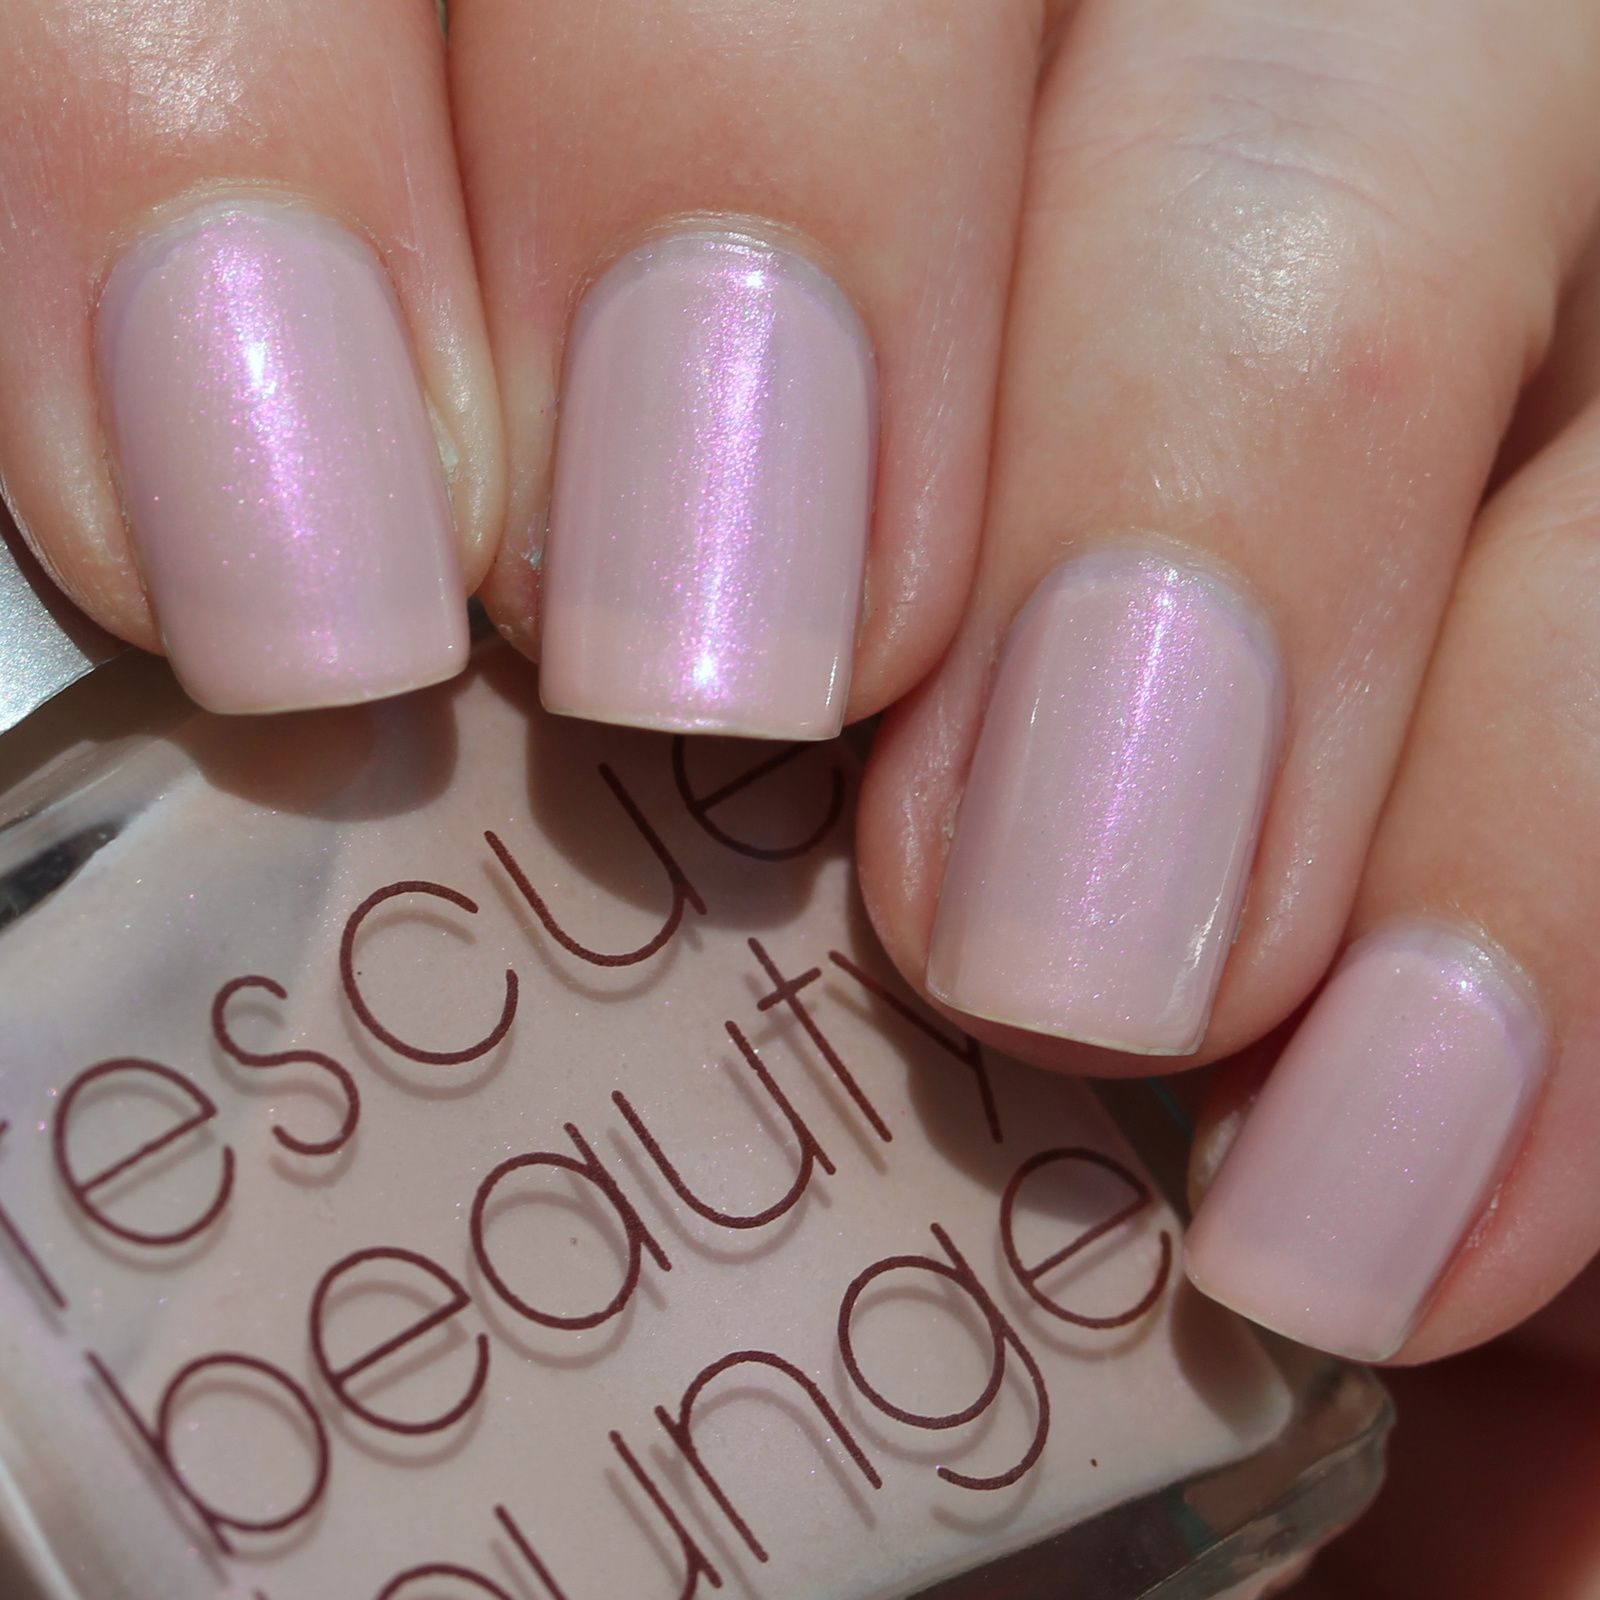 Essie Protein Base Coat / Rescue Beauty Lounge Thank You / HK Girl Top Coat